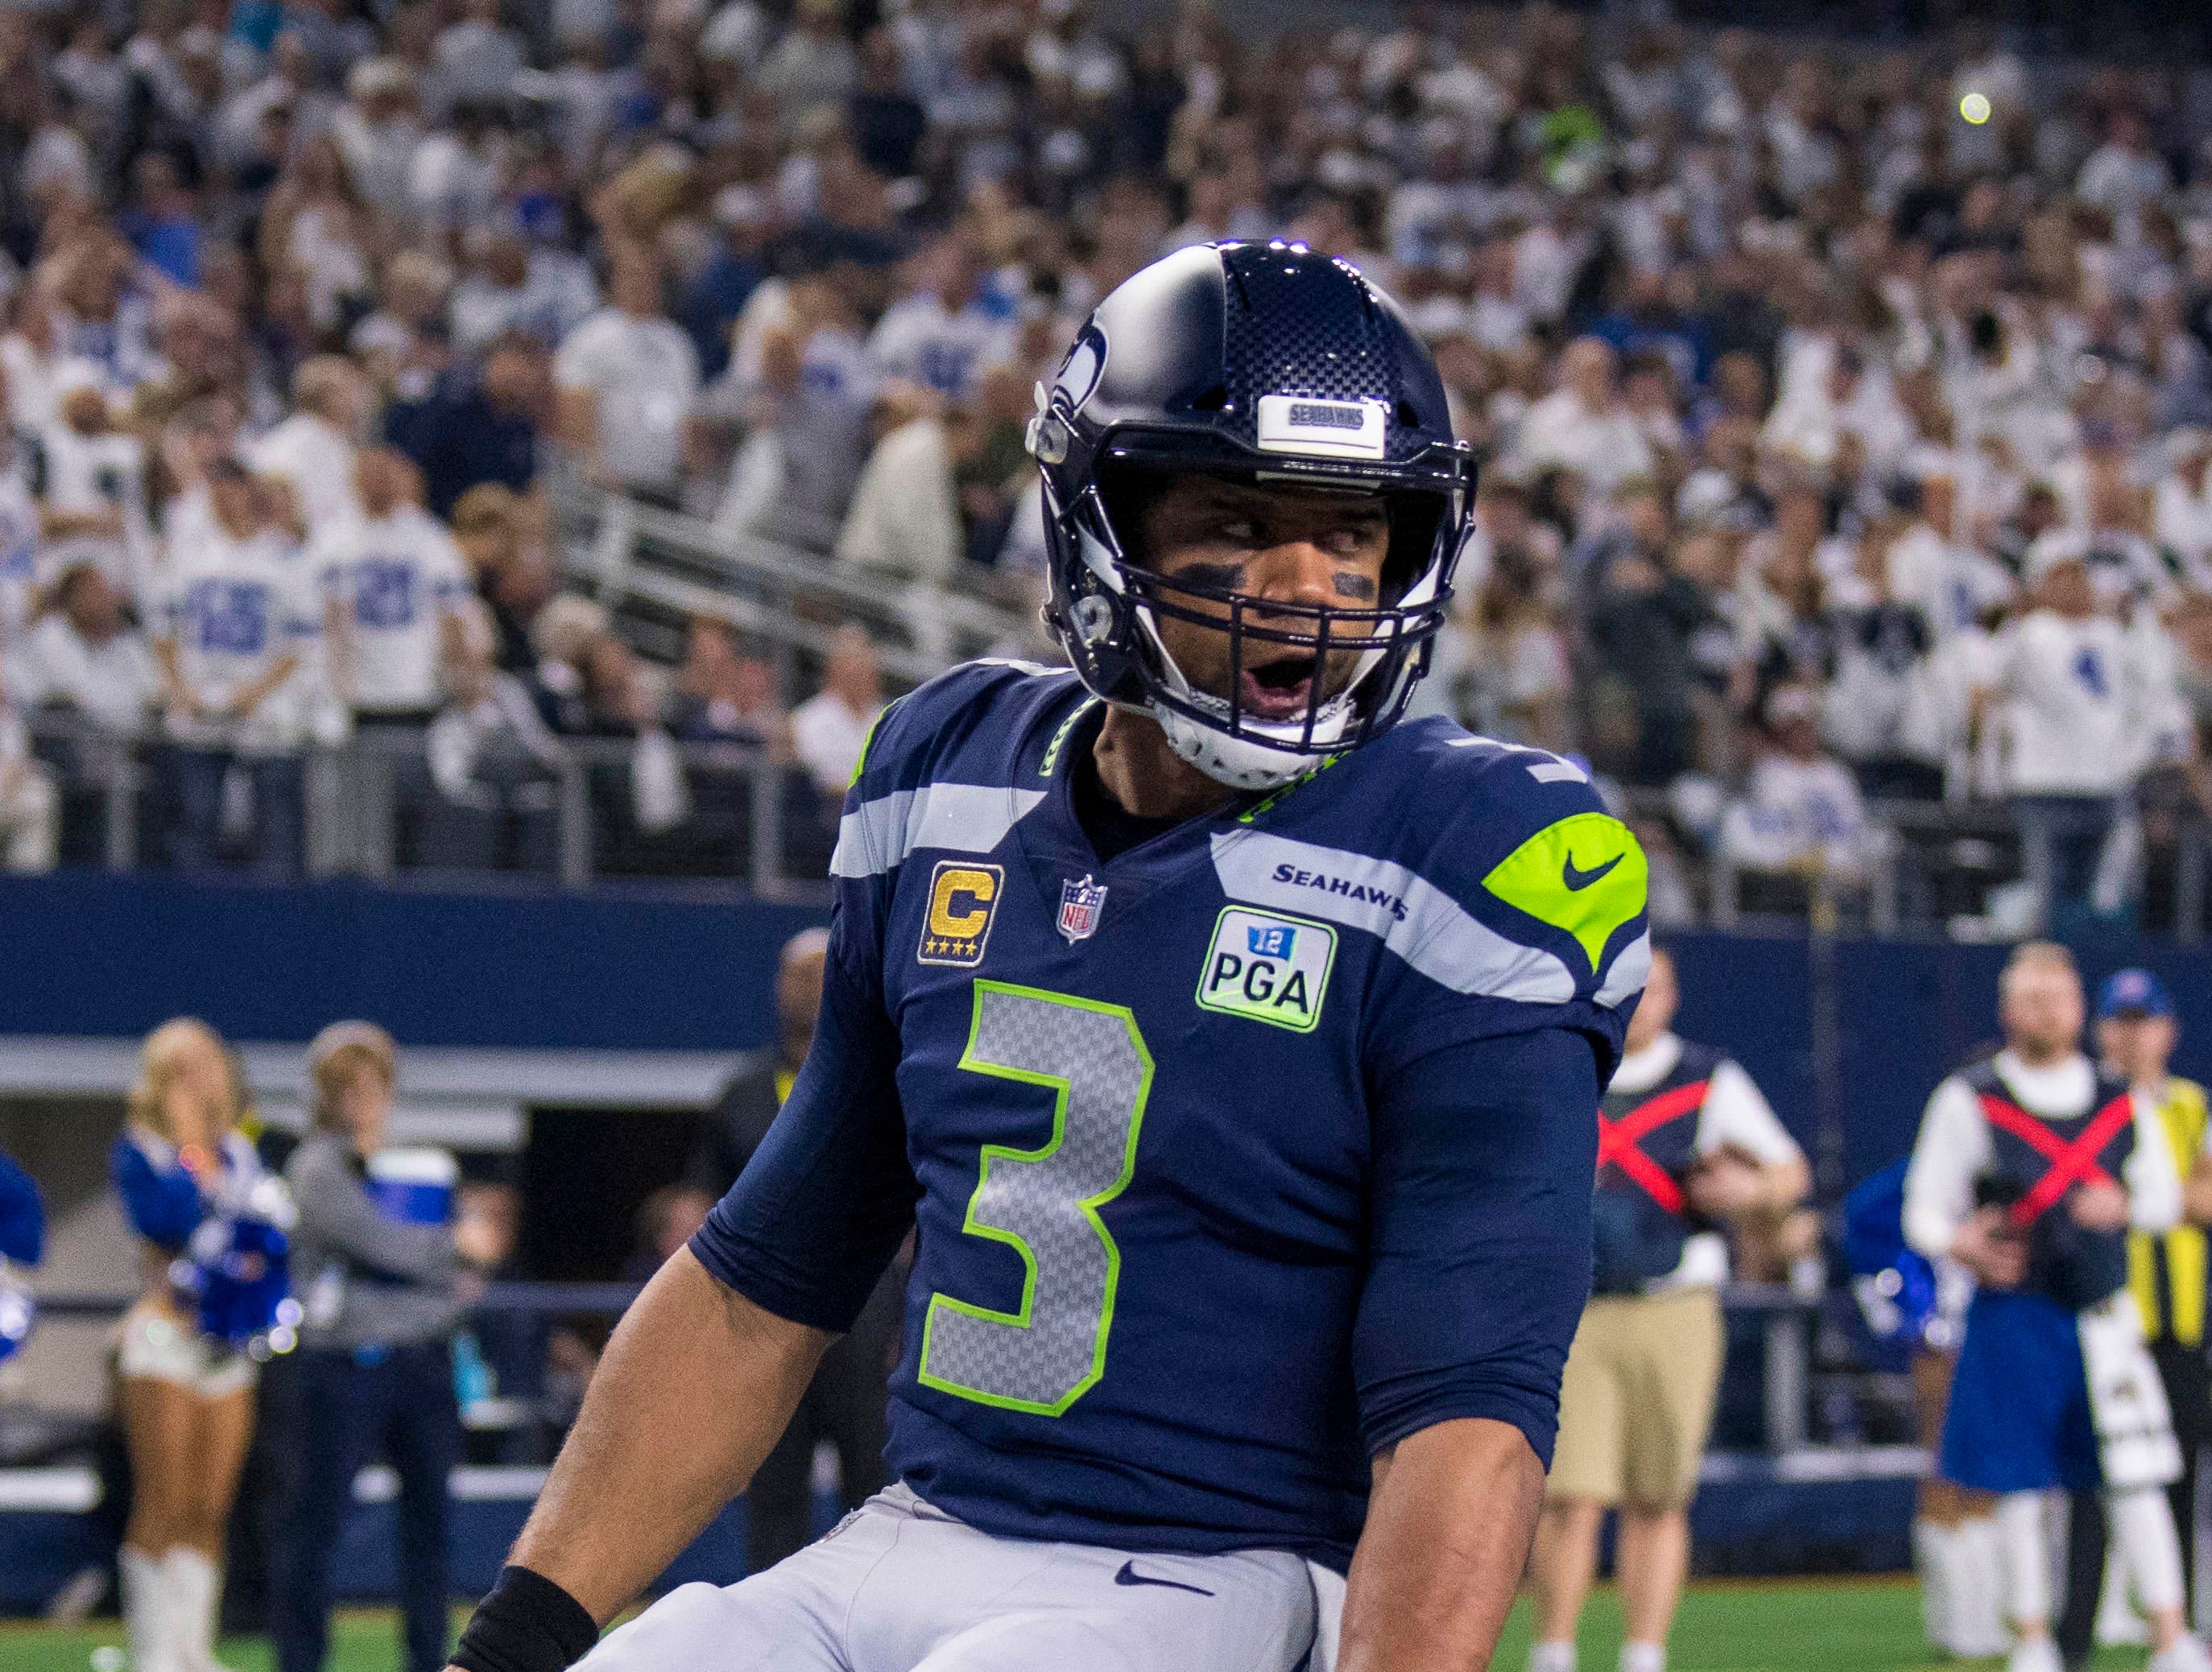 Seattle Seahawks quarterback Russell Wilson reacts after scoring a rushing touchdown against the Dallas Cowboys during the third quarter at AT&T Stadium.